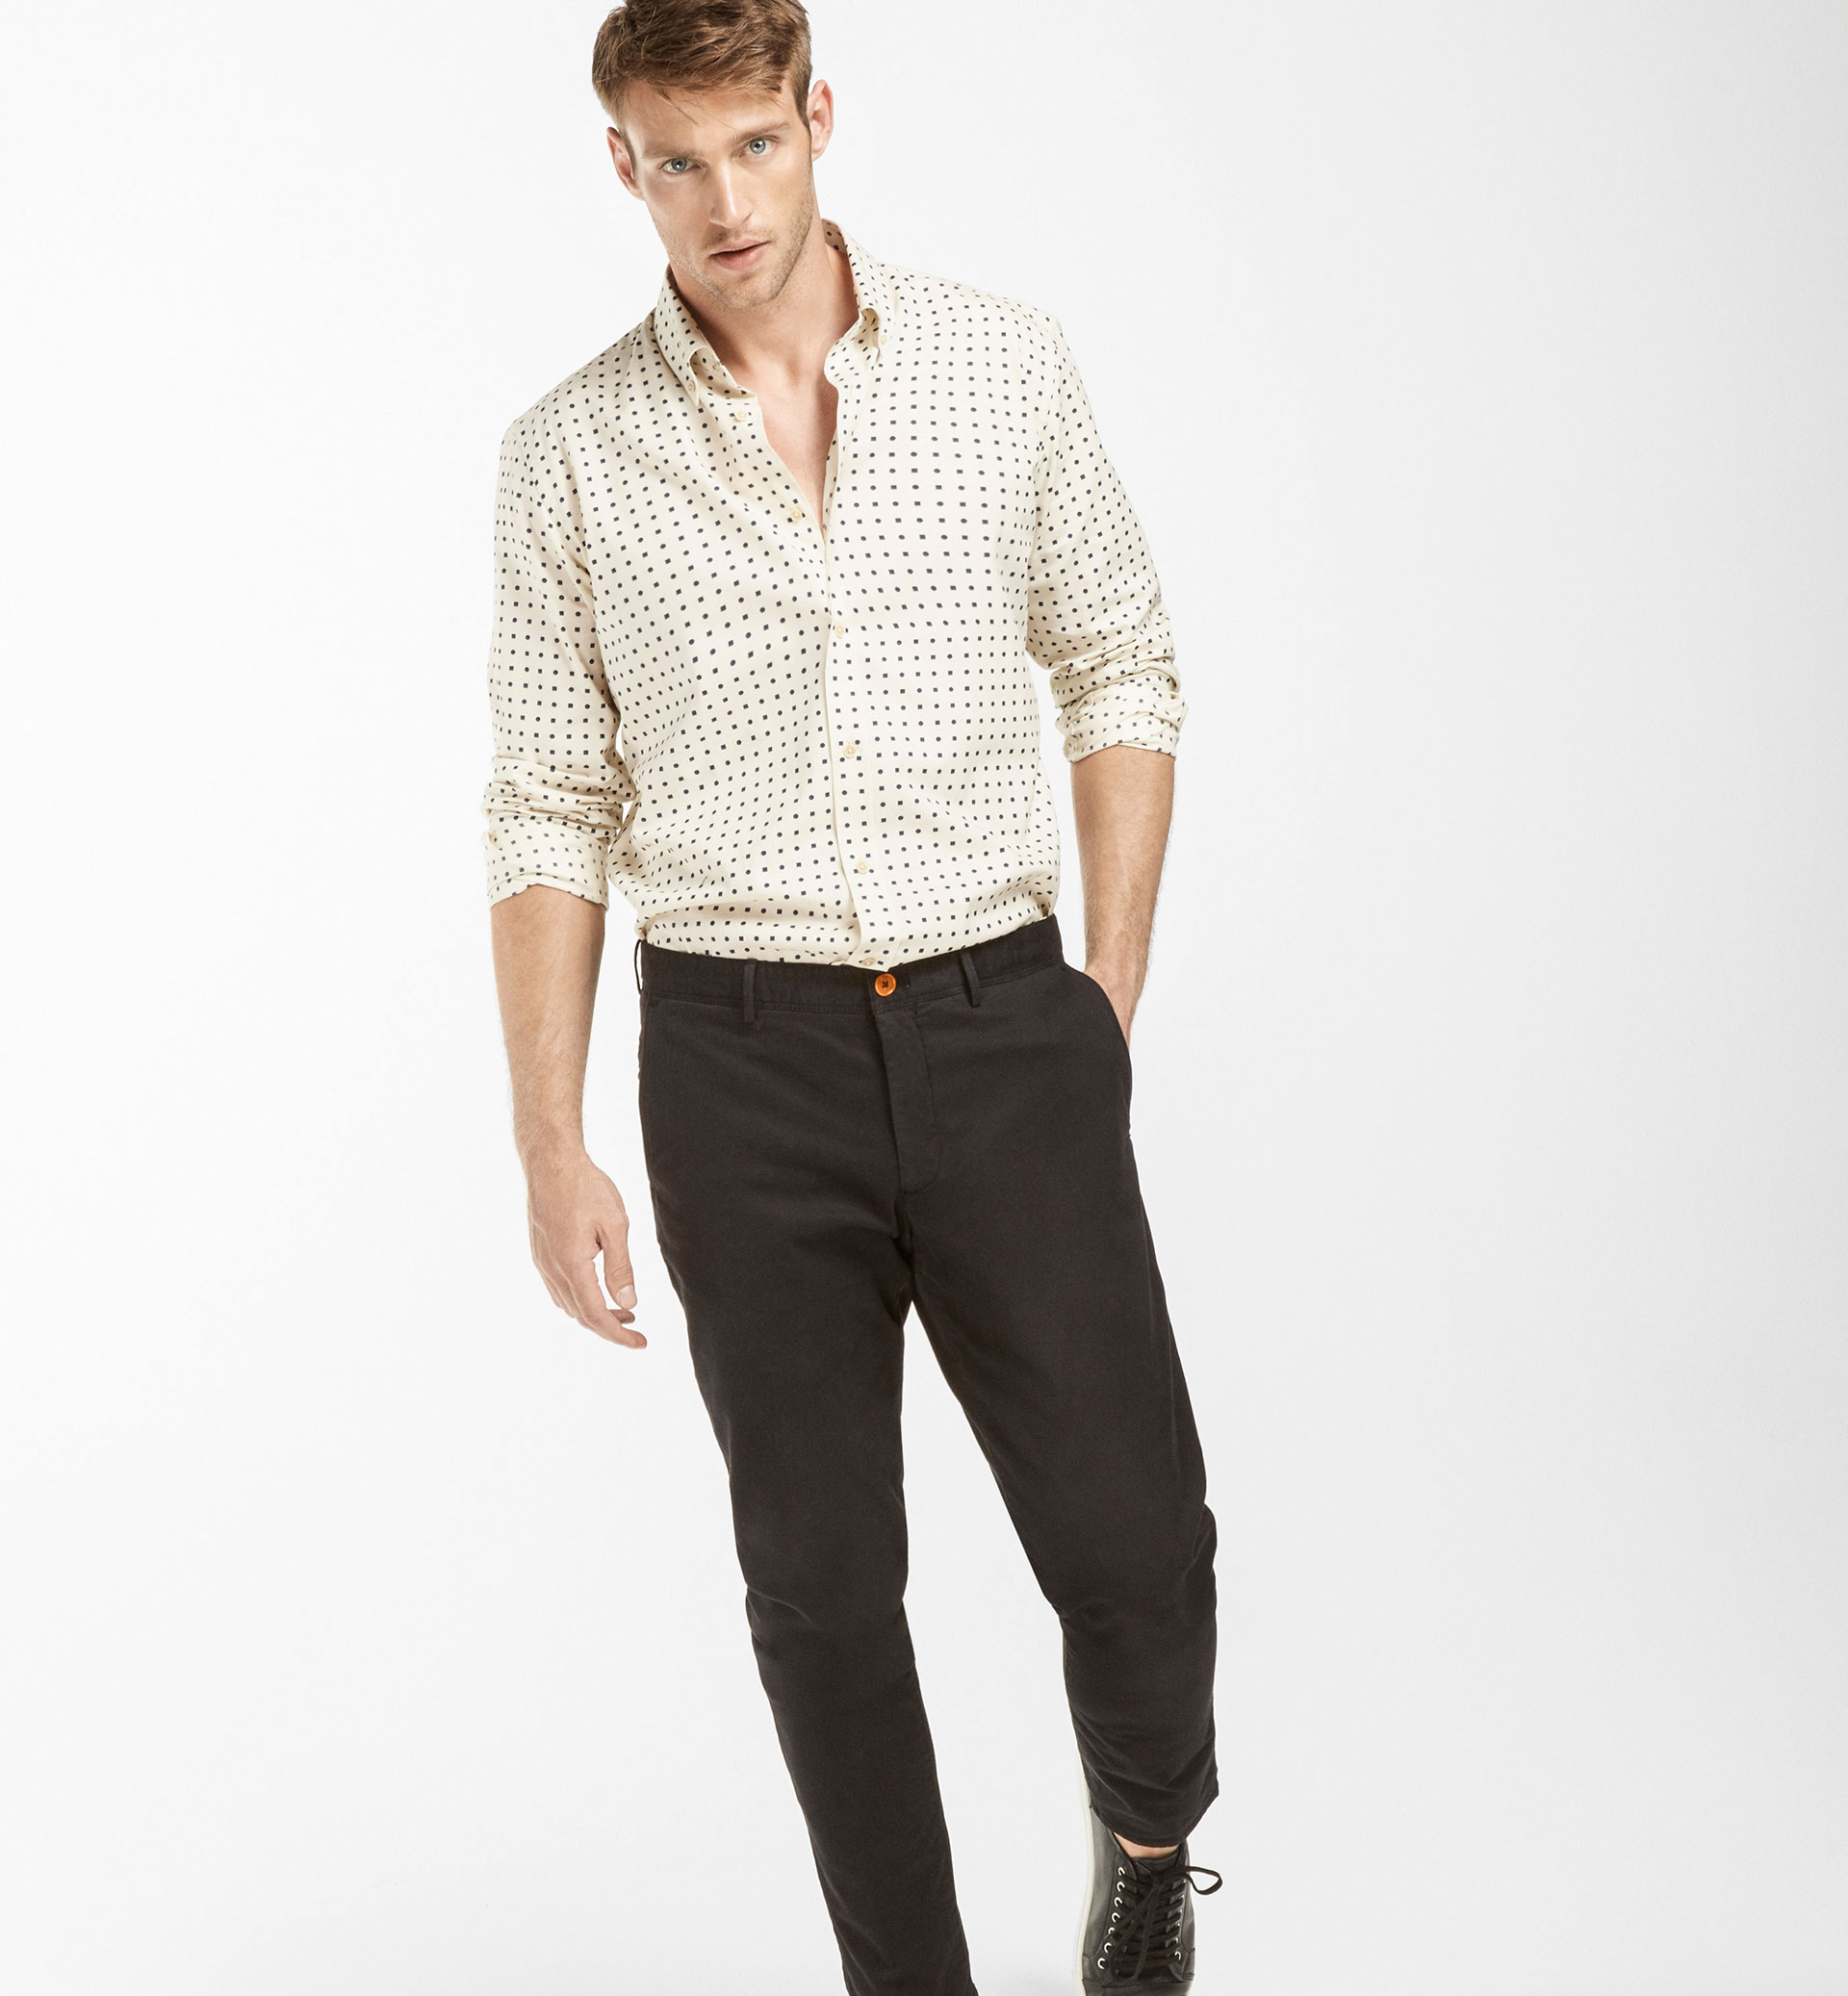 SLIM FIT BEIGE POLKA DOT AND CHECKED SHIRT